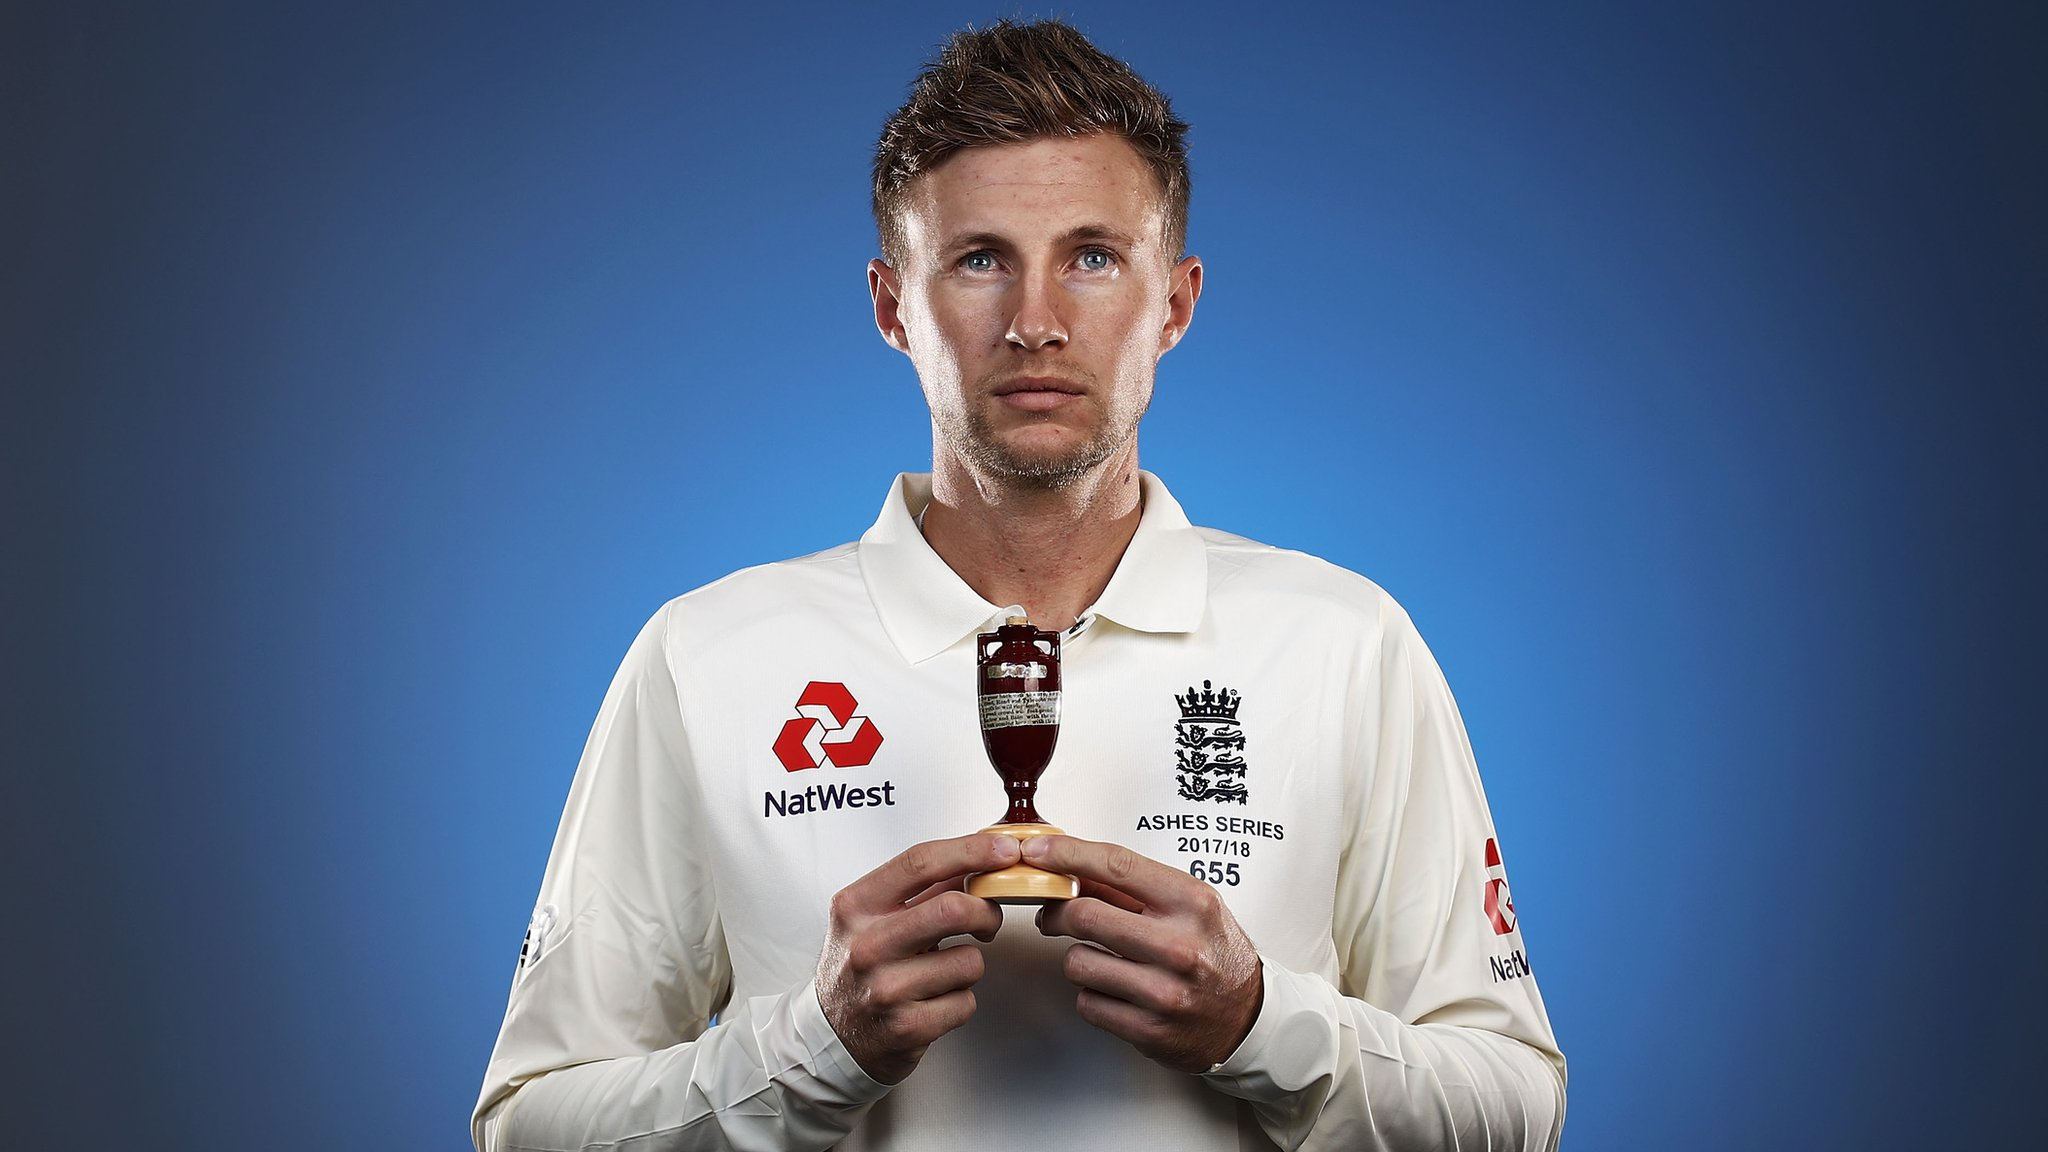 Cricket: BBC Test Match Special coverage on radio and online